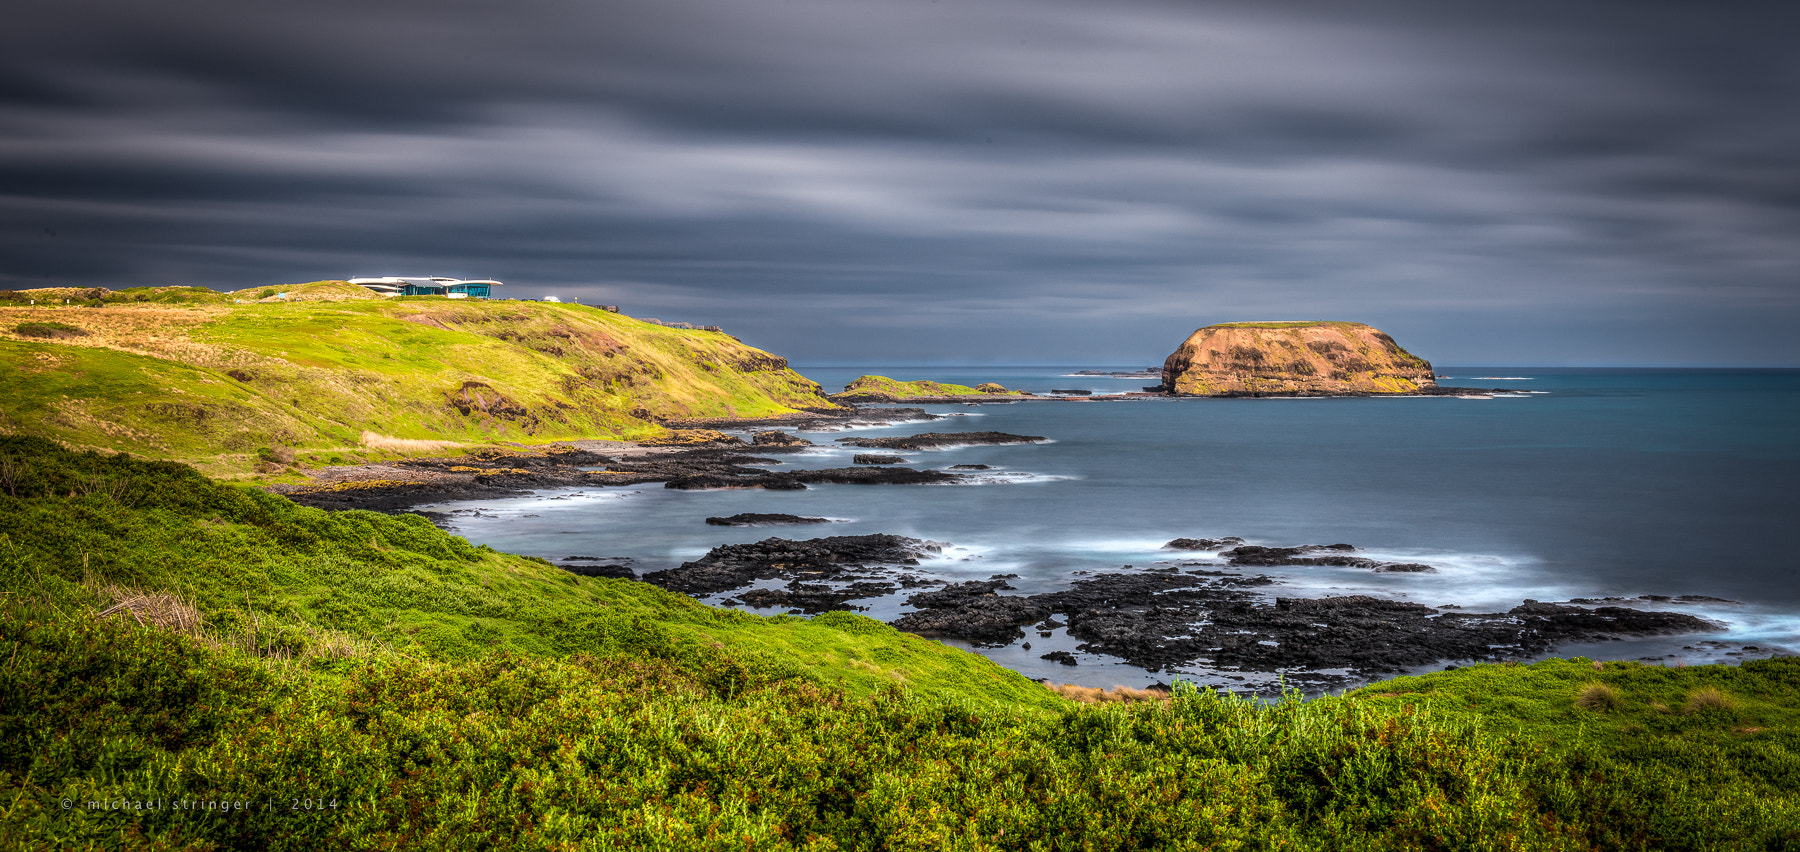 Photograph The Nobbies - Phillip island, Victoria, Australia. by Michael Stringer on 500px